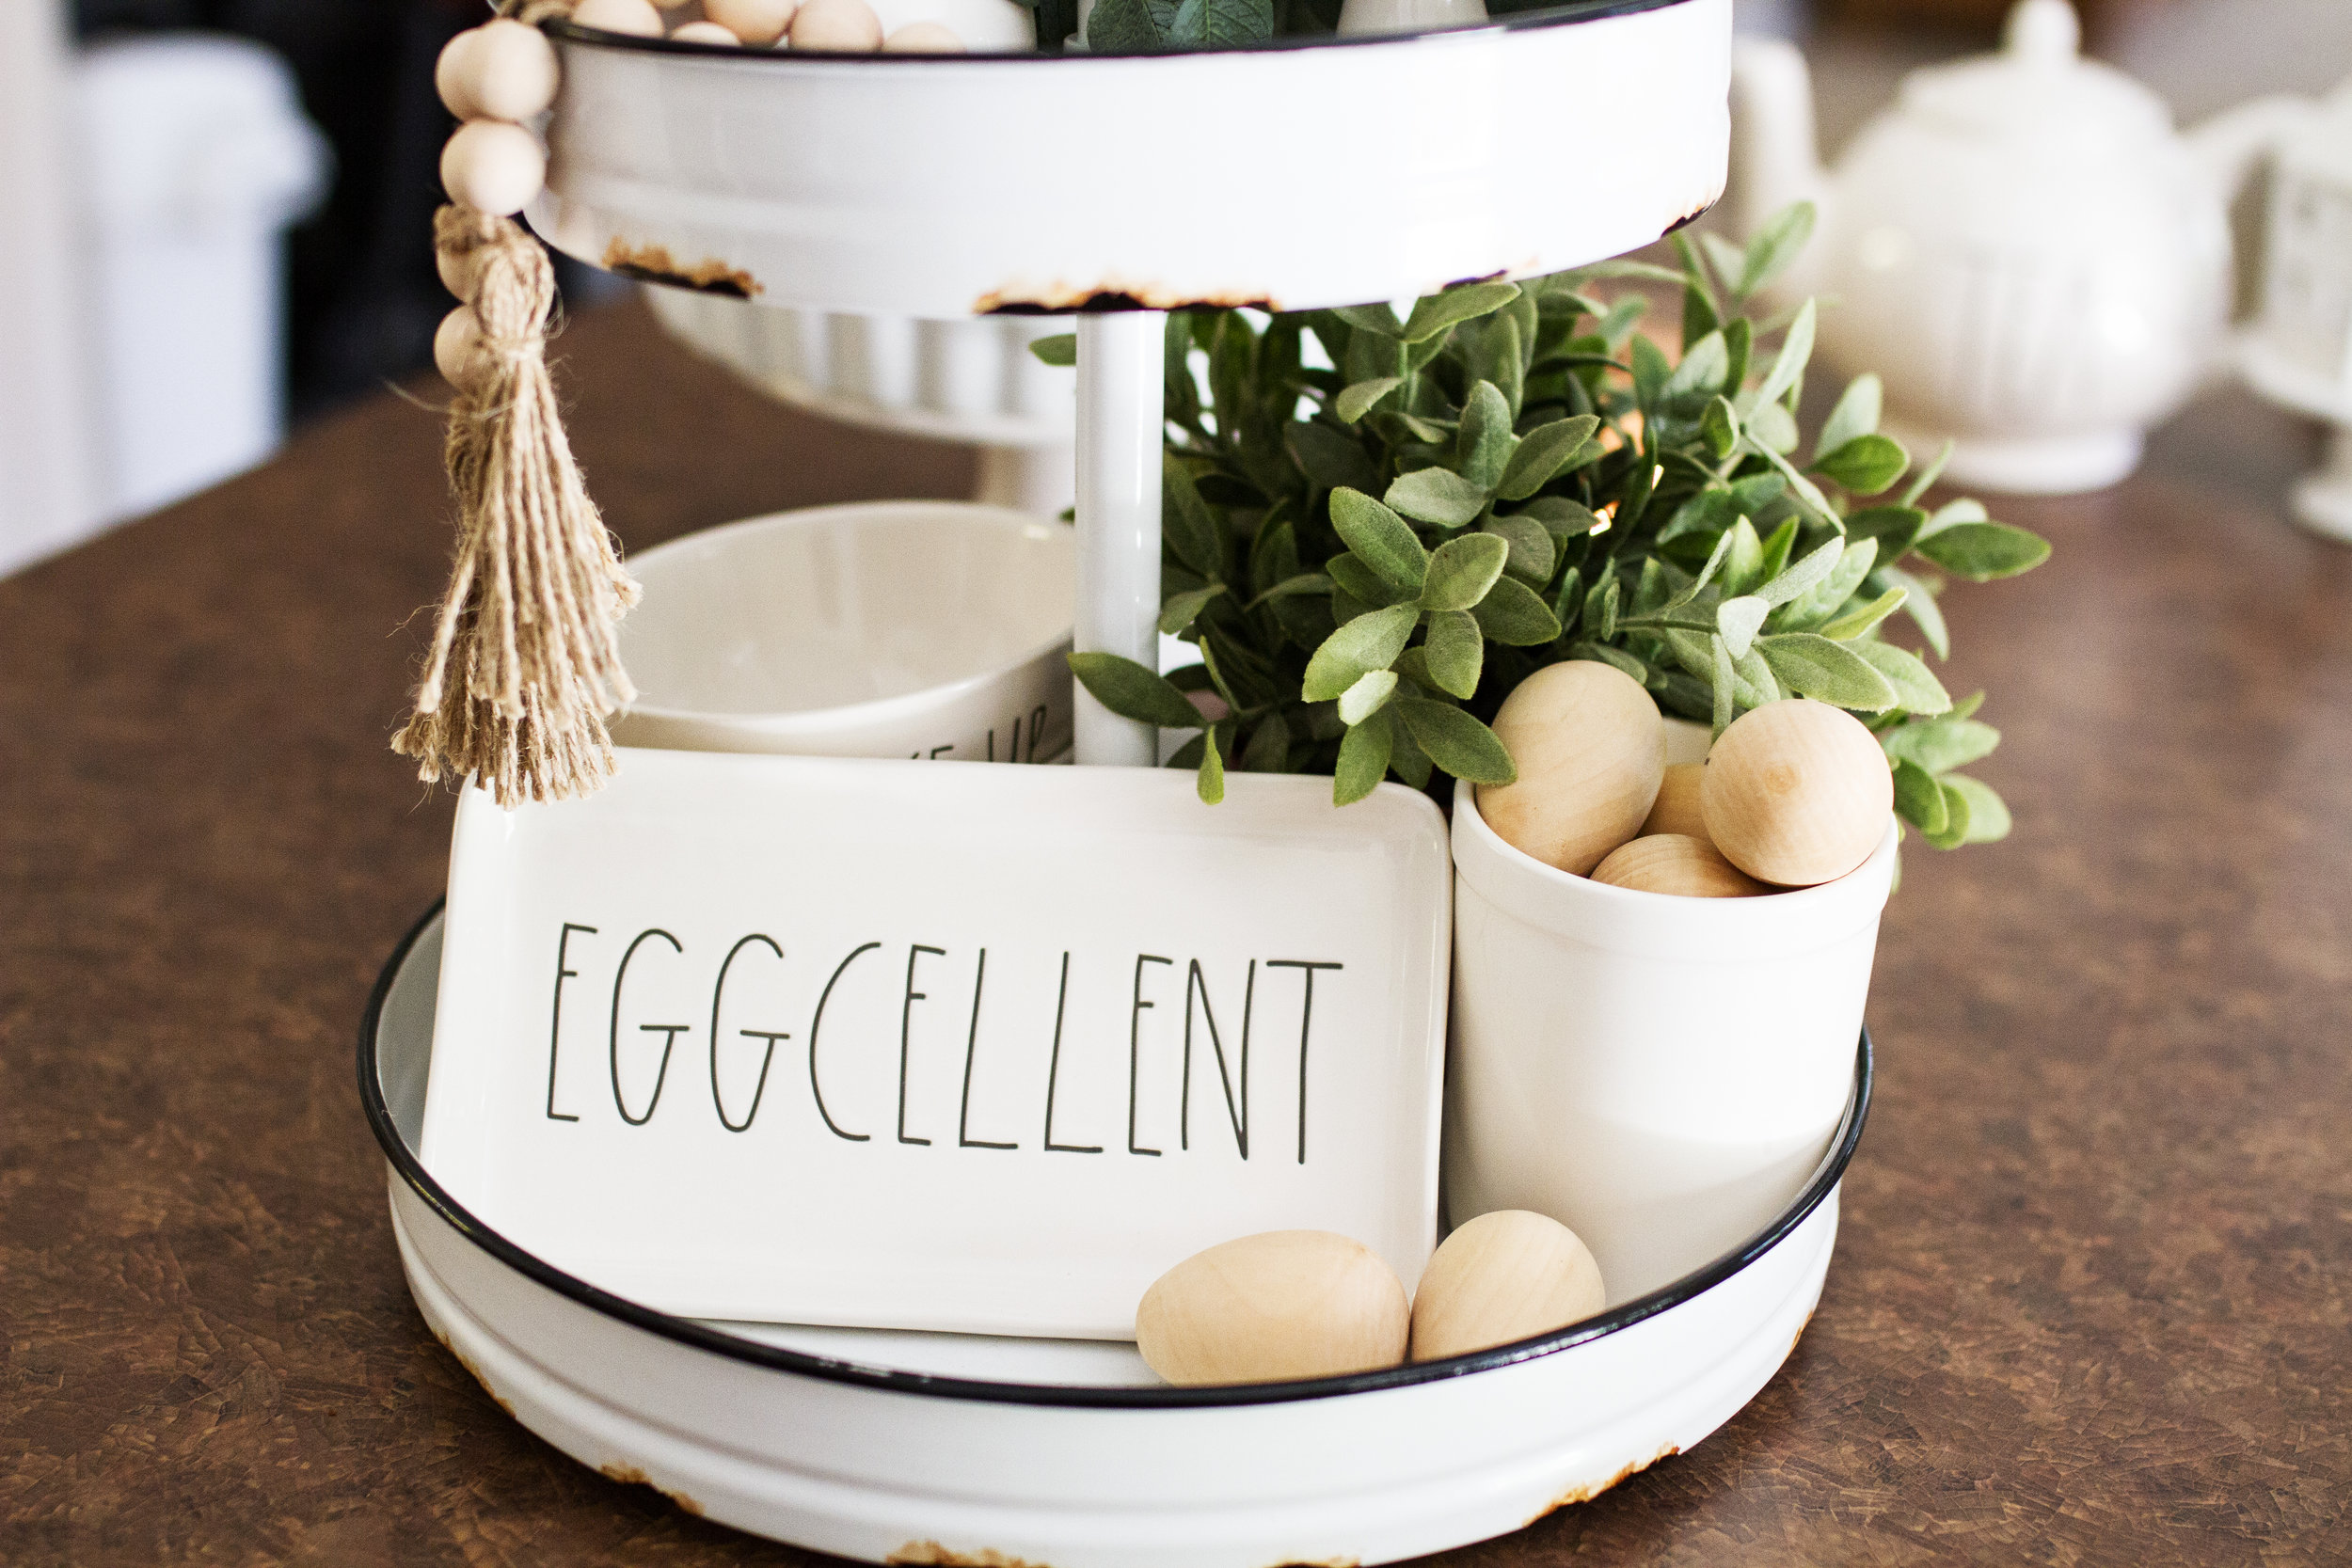 White Tiered Tray: Hobby Lobby   EGGCELLENT plate: Rae Dunn, Home Goods   Wooden Eggs: Target Dollar spot  Faux plants: Ikea